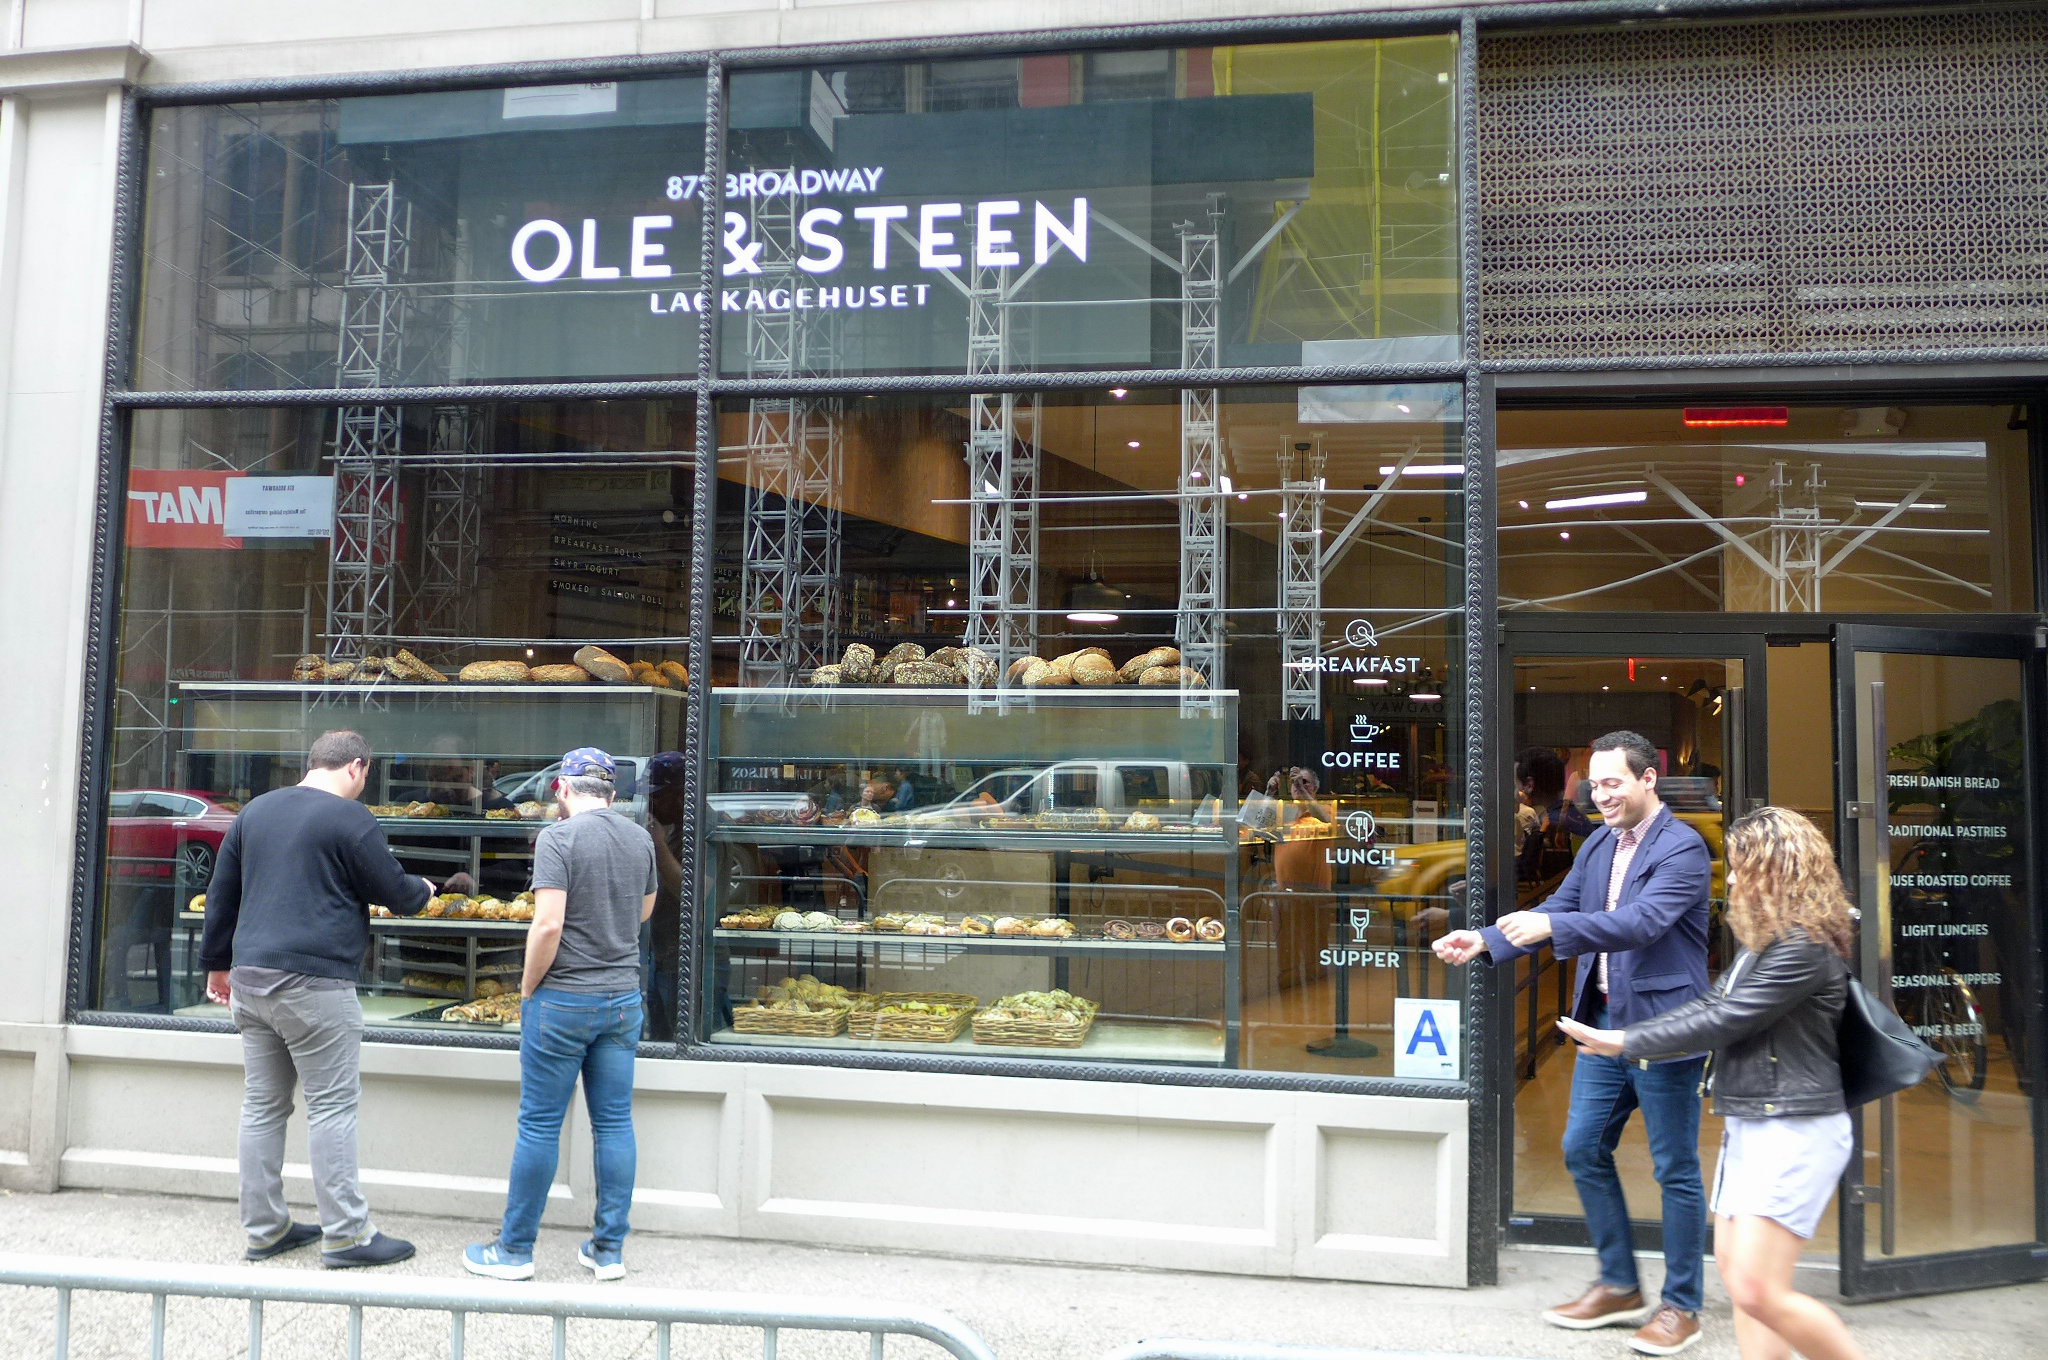 Ole & Steen exterior